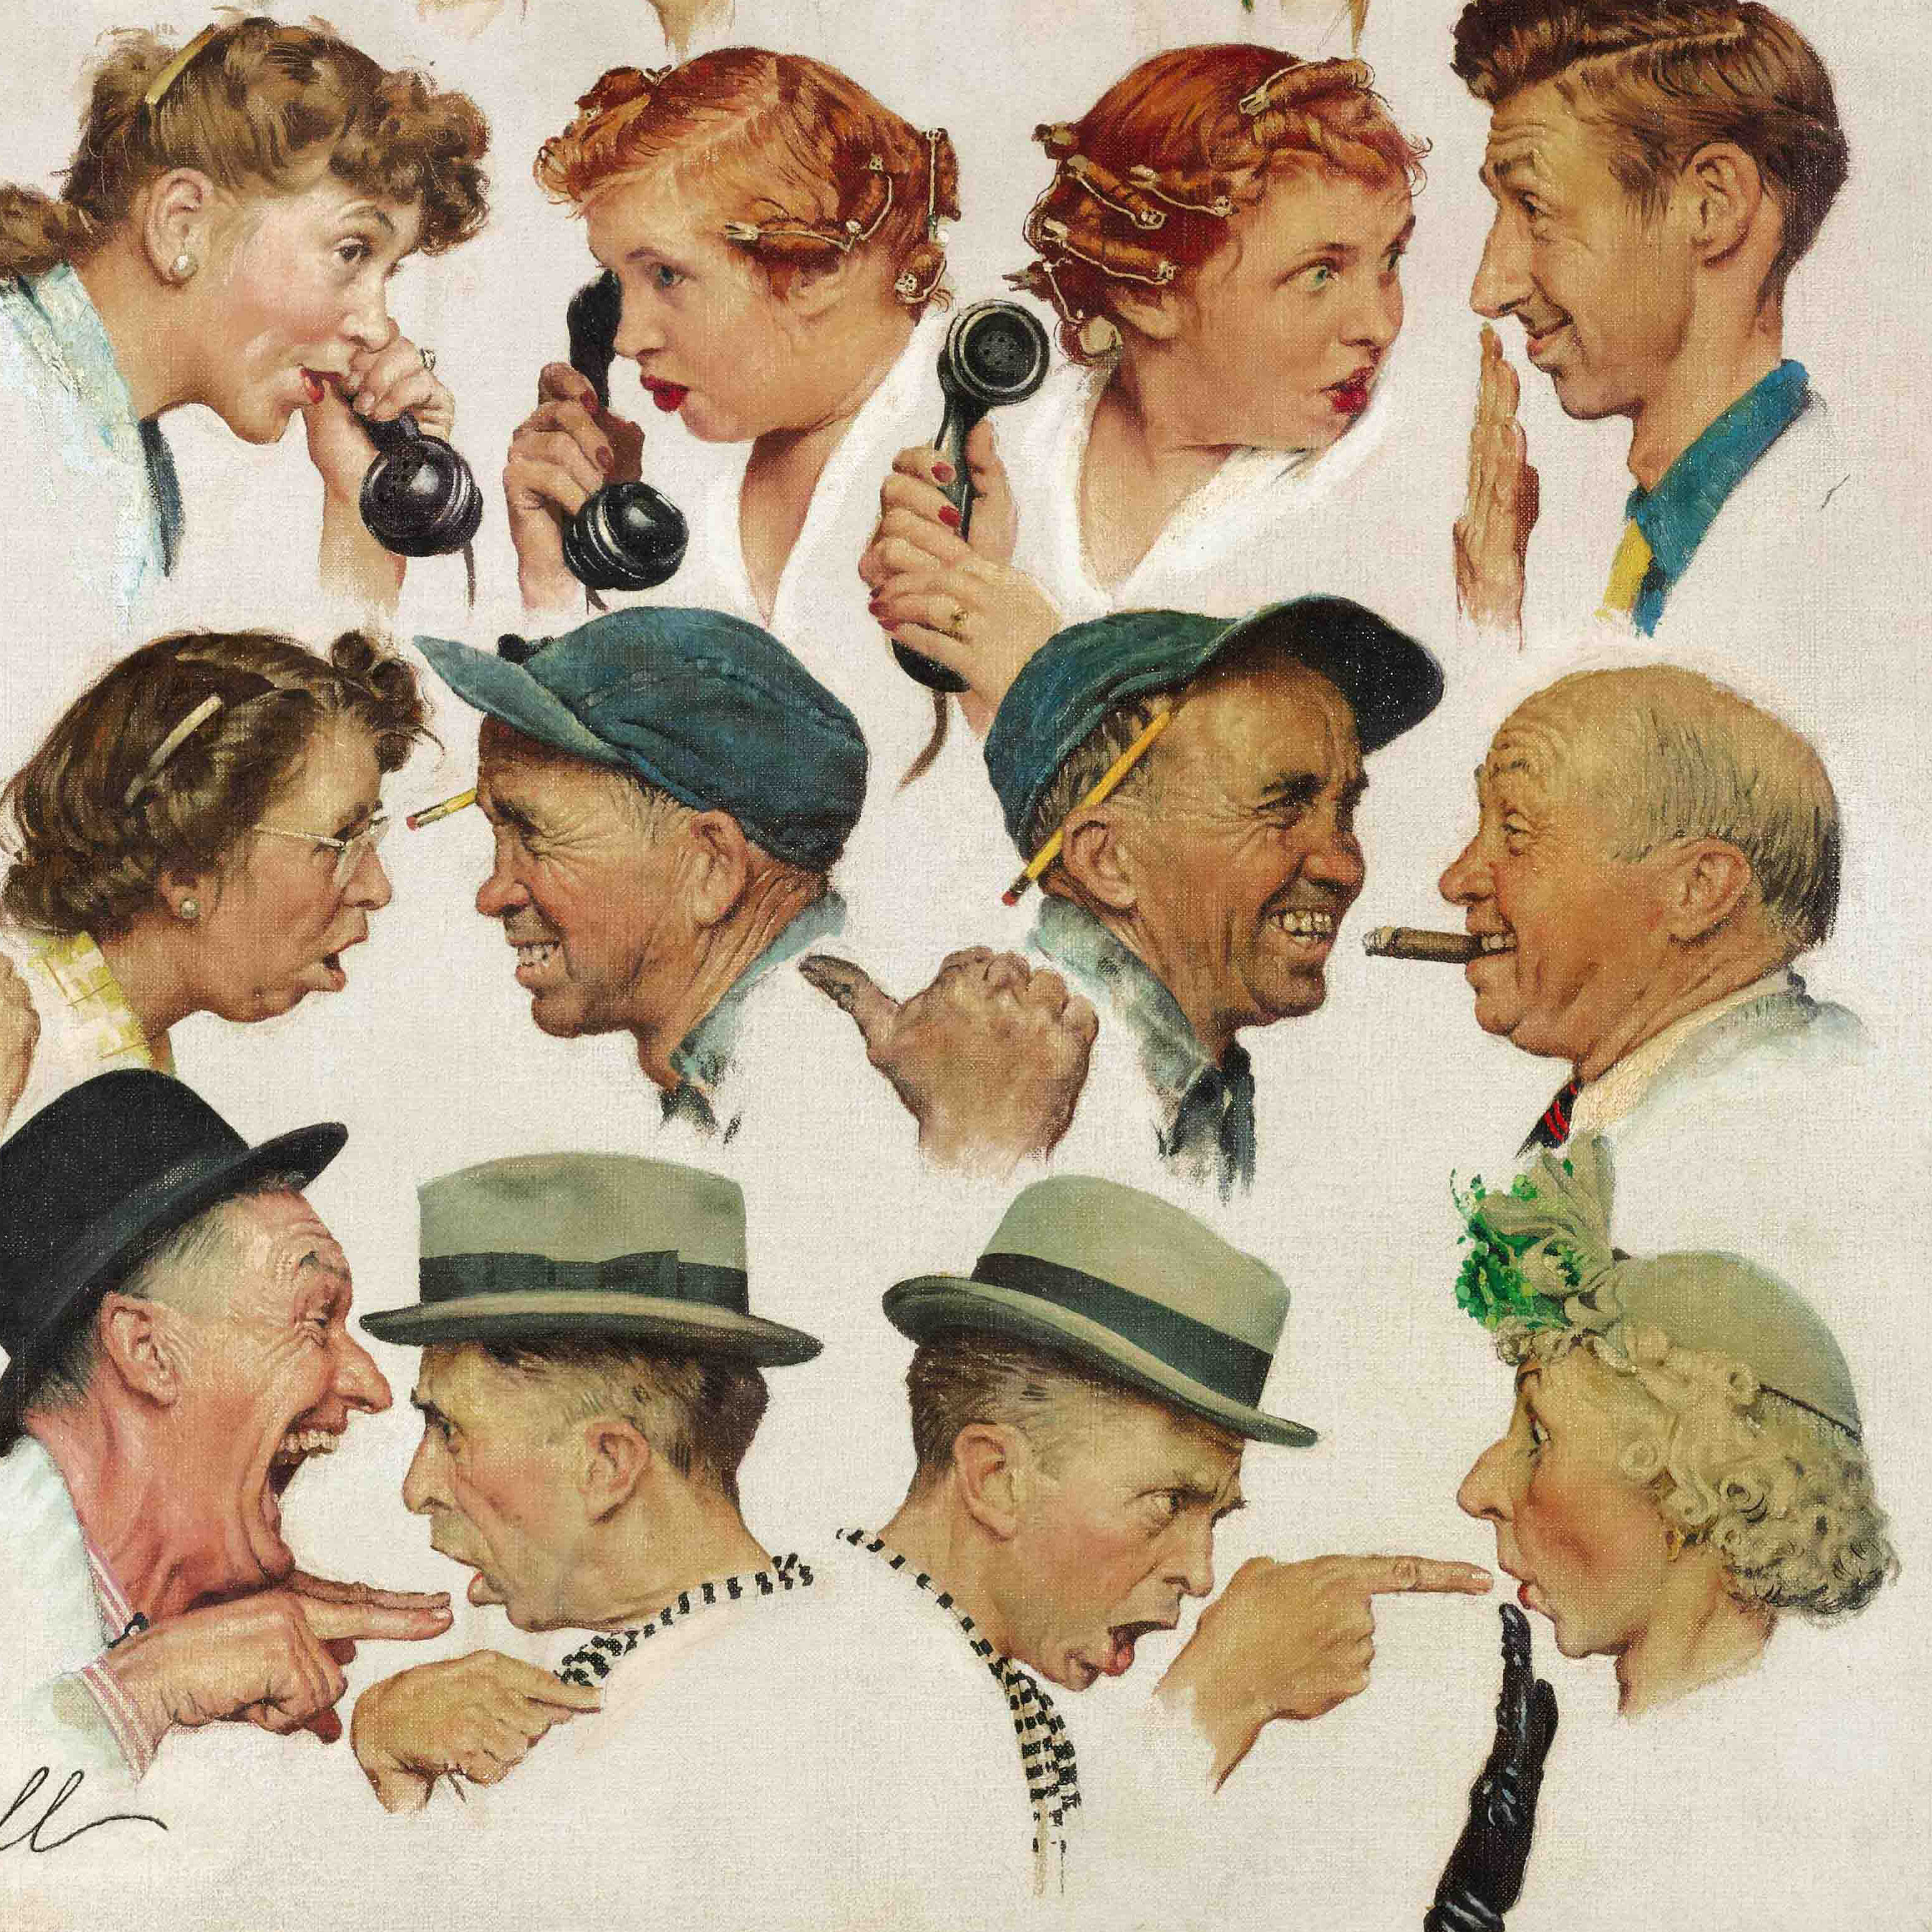 Rockwell's The Gossips, seen here in a detail view, sold for nearly $8.5 million Wednesday. To see the full painting, click the image.